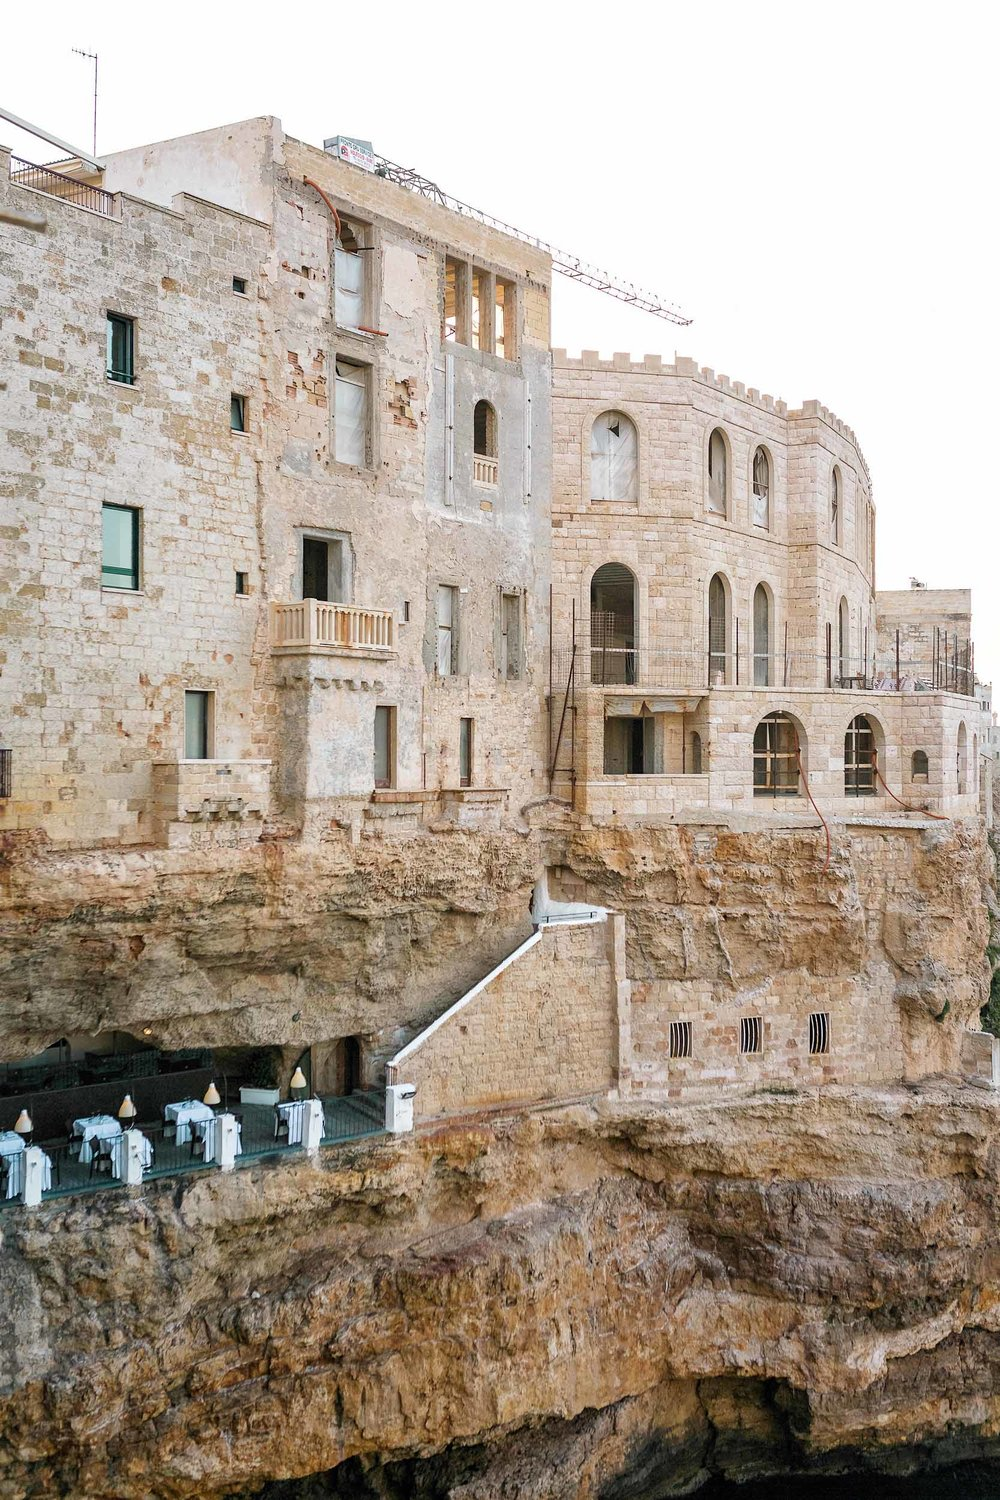 Everything you need to know about visitingGrotta Palazzese, that famous cave restaurant in Puglia, Italy you see all over Pinterest!